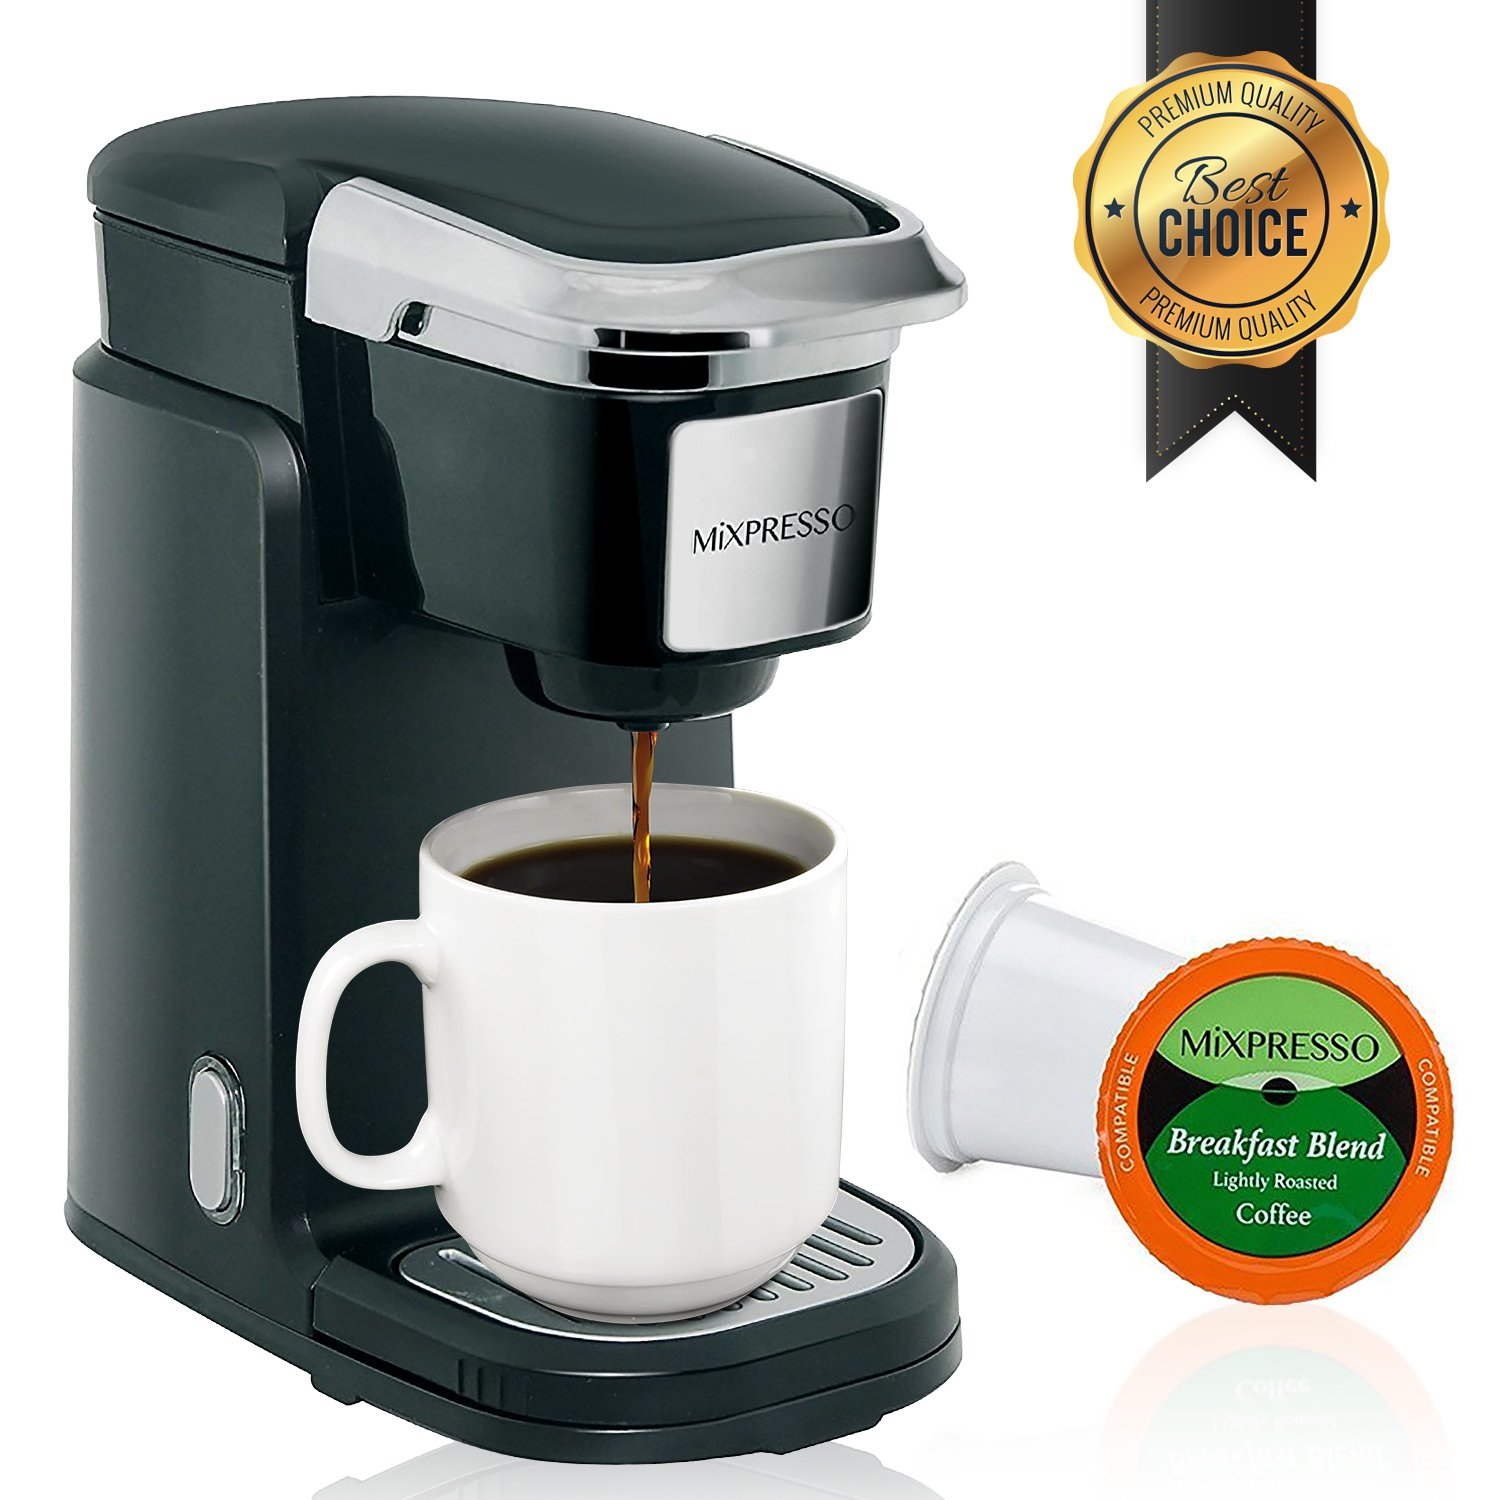 Mixpresso Single Cup Coffee Maker | Personal, Single Serve Coffee Brewer Machine, Compatible With K-Cups | Quick Brew Technology, Programmable Features, One Touch Function by Mixpresso Coffee